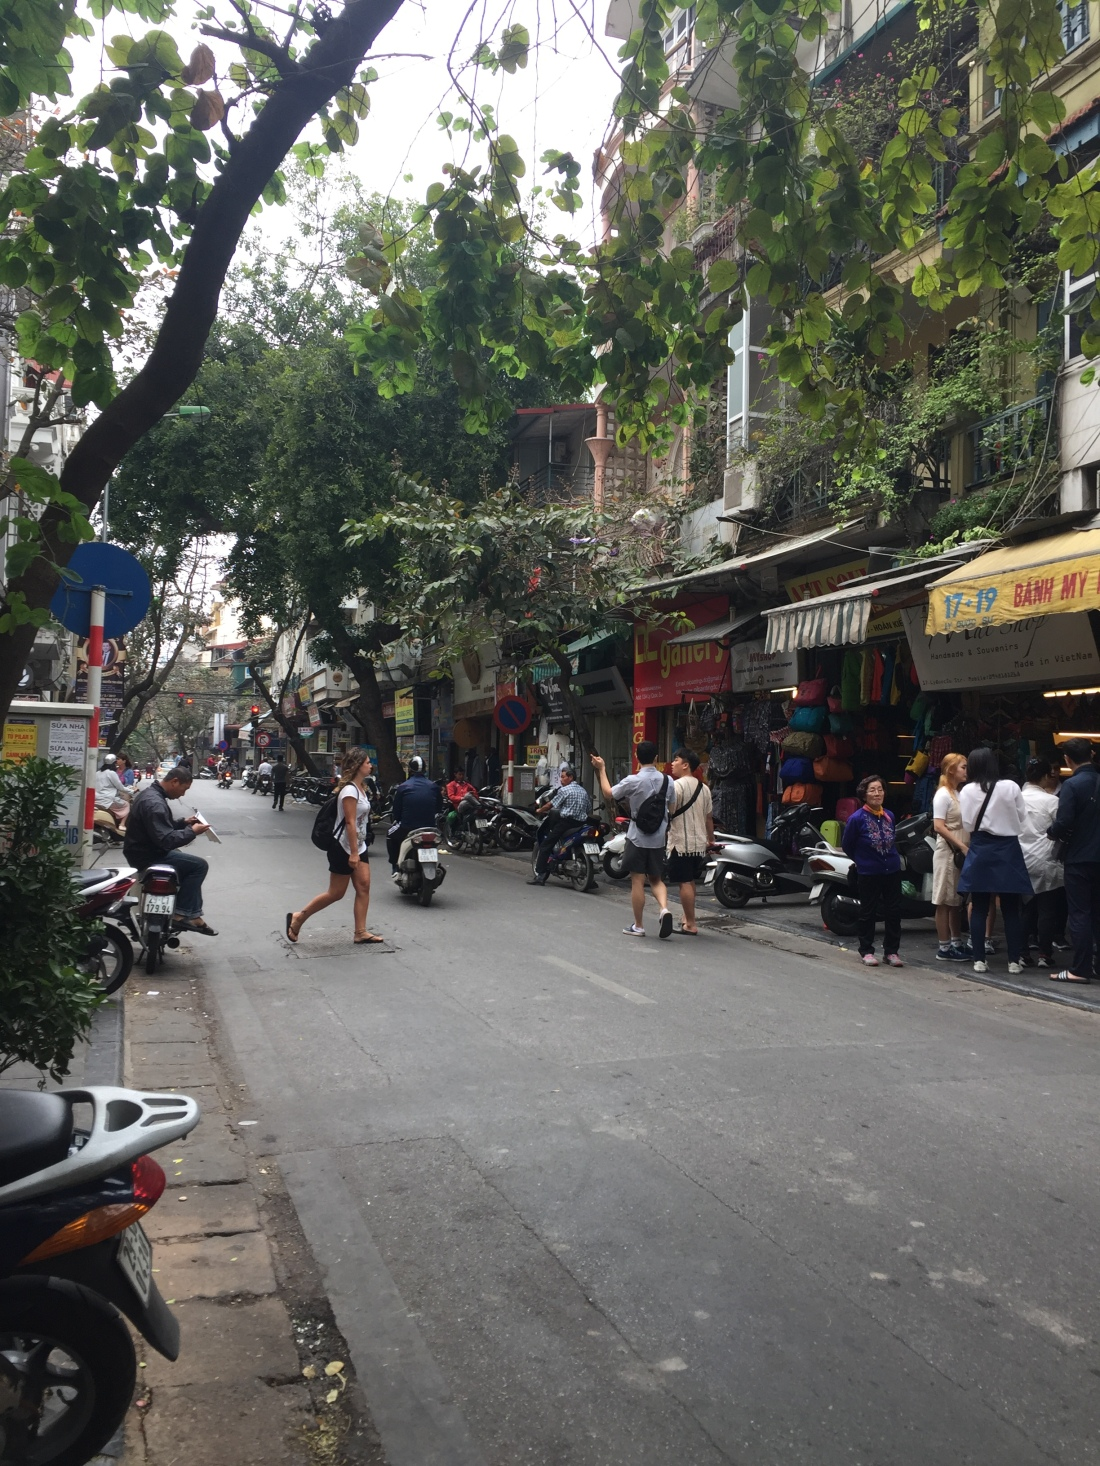 Hanoi Old Quarter in Vietnam